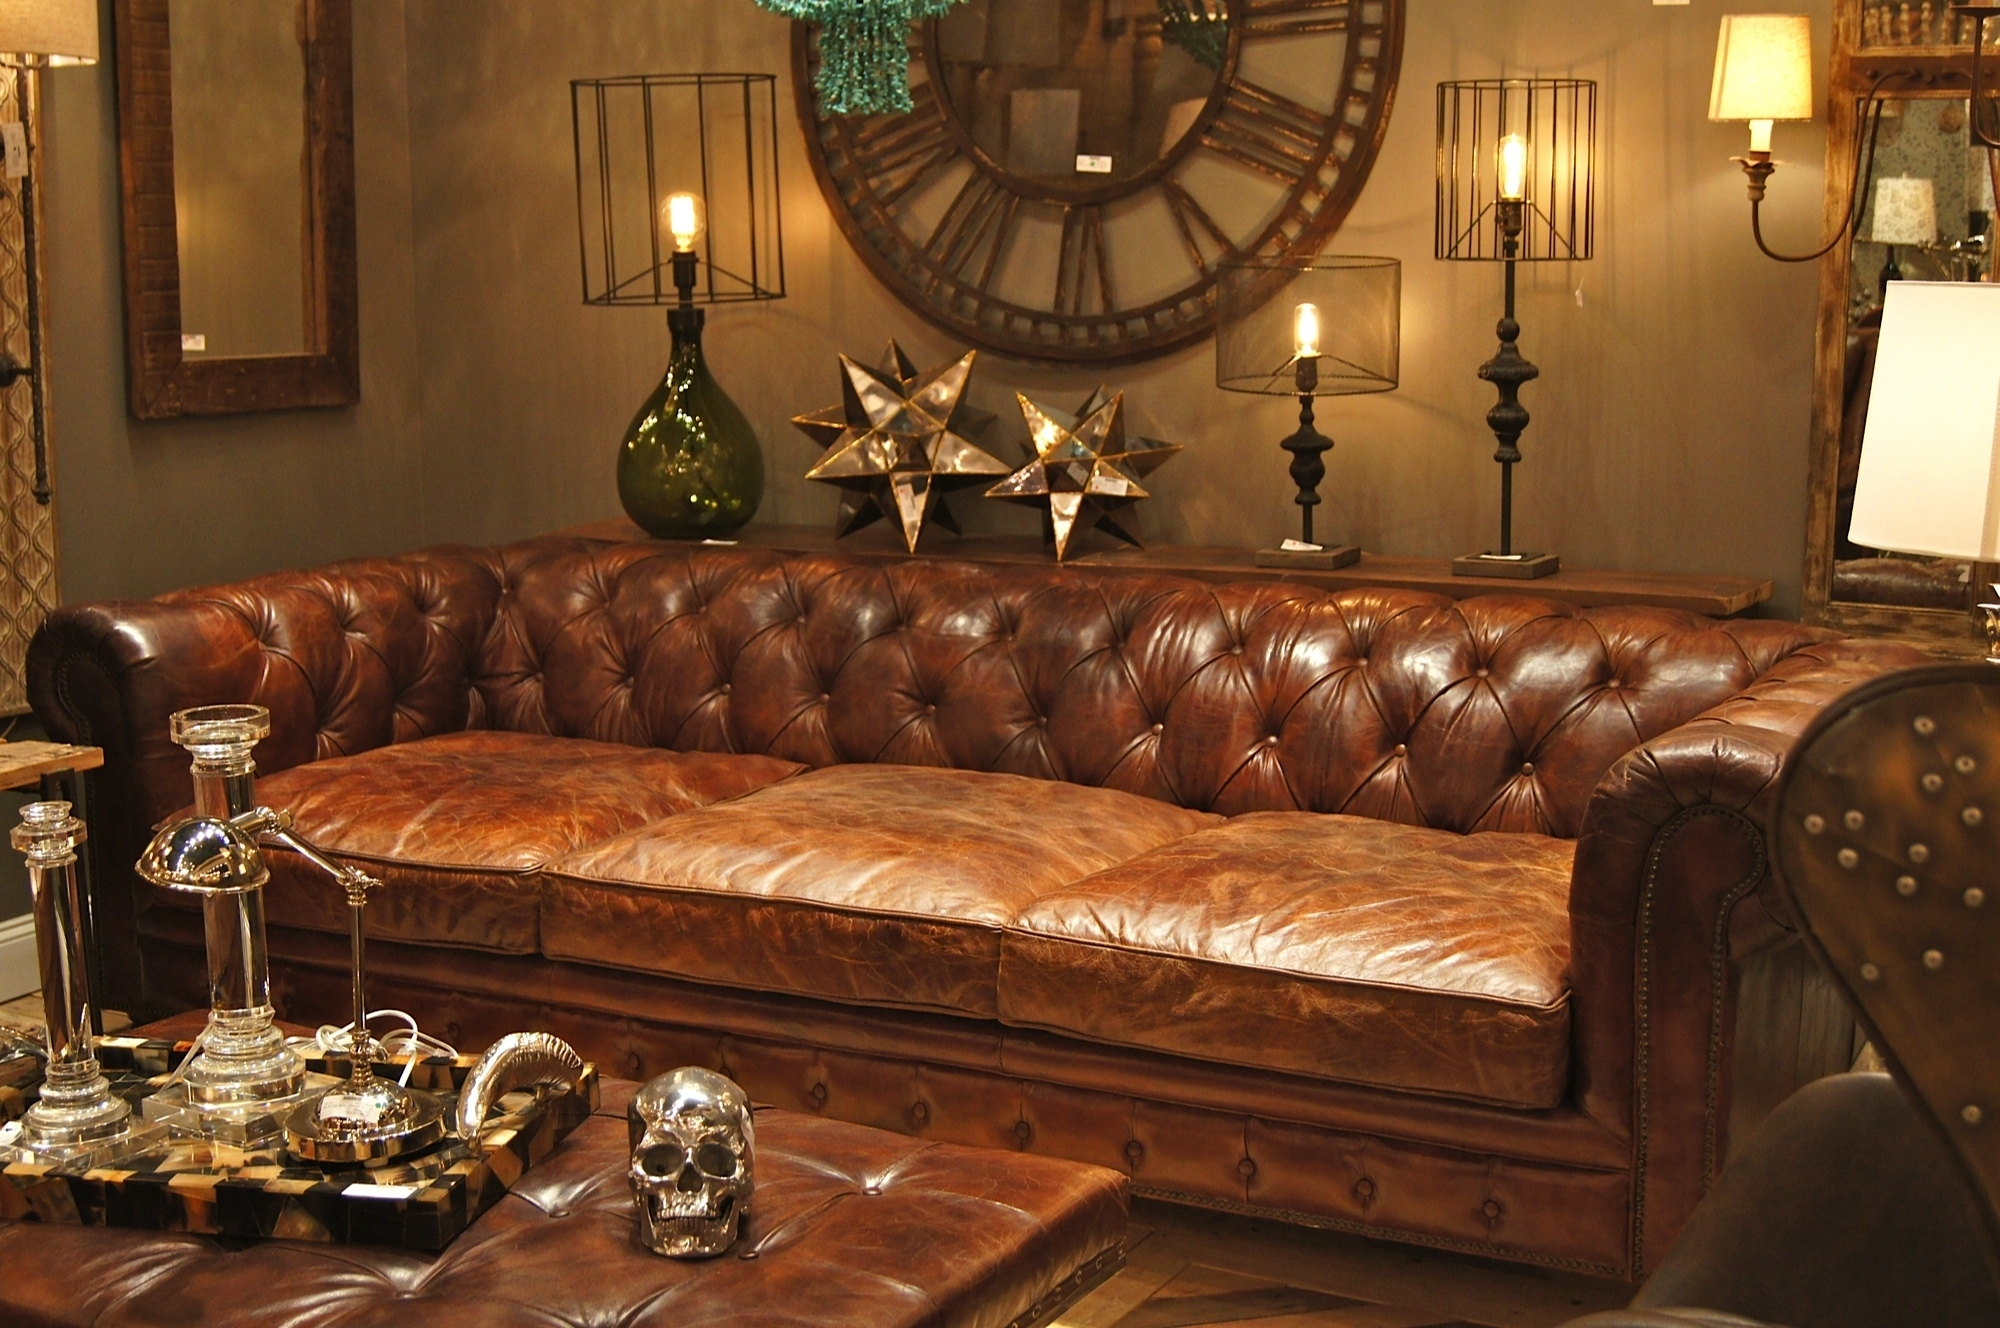 Extra Deep Chesterfield Sofa In Antique Brown Finish Plus Tufted in Deep Cushion Sofas (Image 7 of 10)